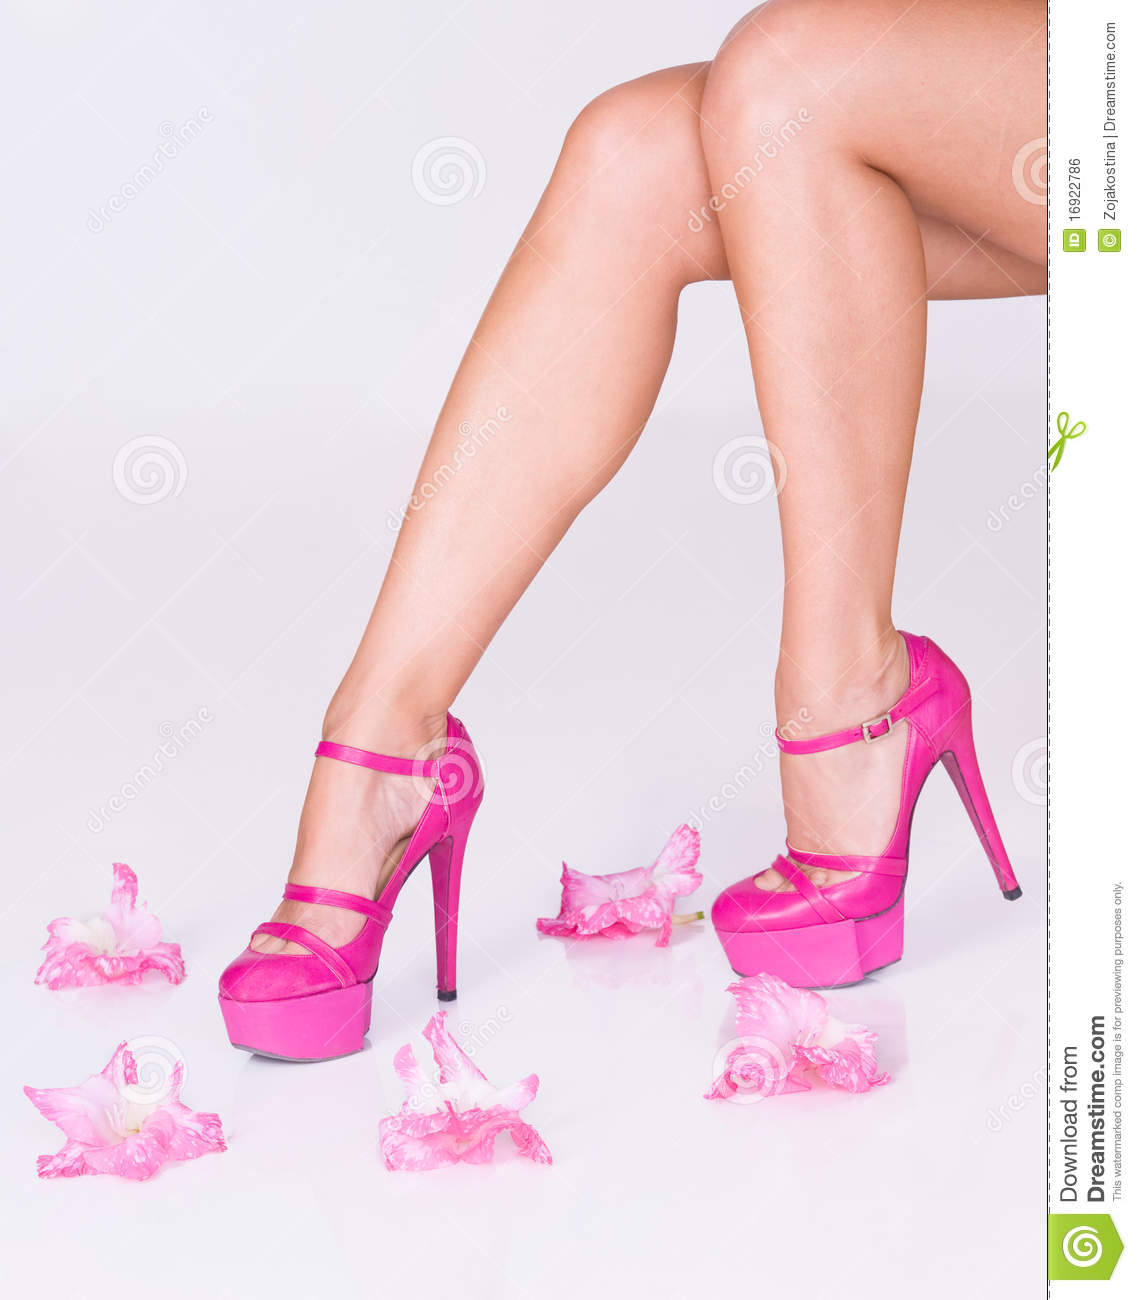 Fashion Pink High Heels And Flowers Stock Photo Image Of Skin